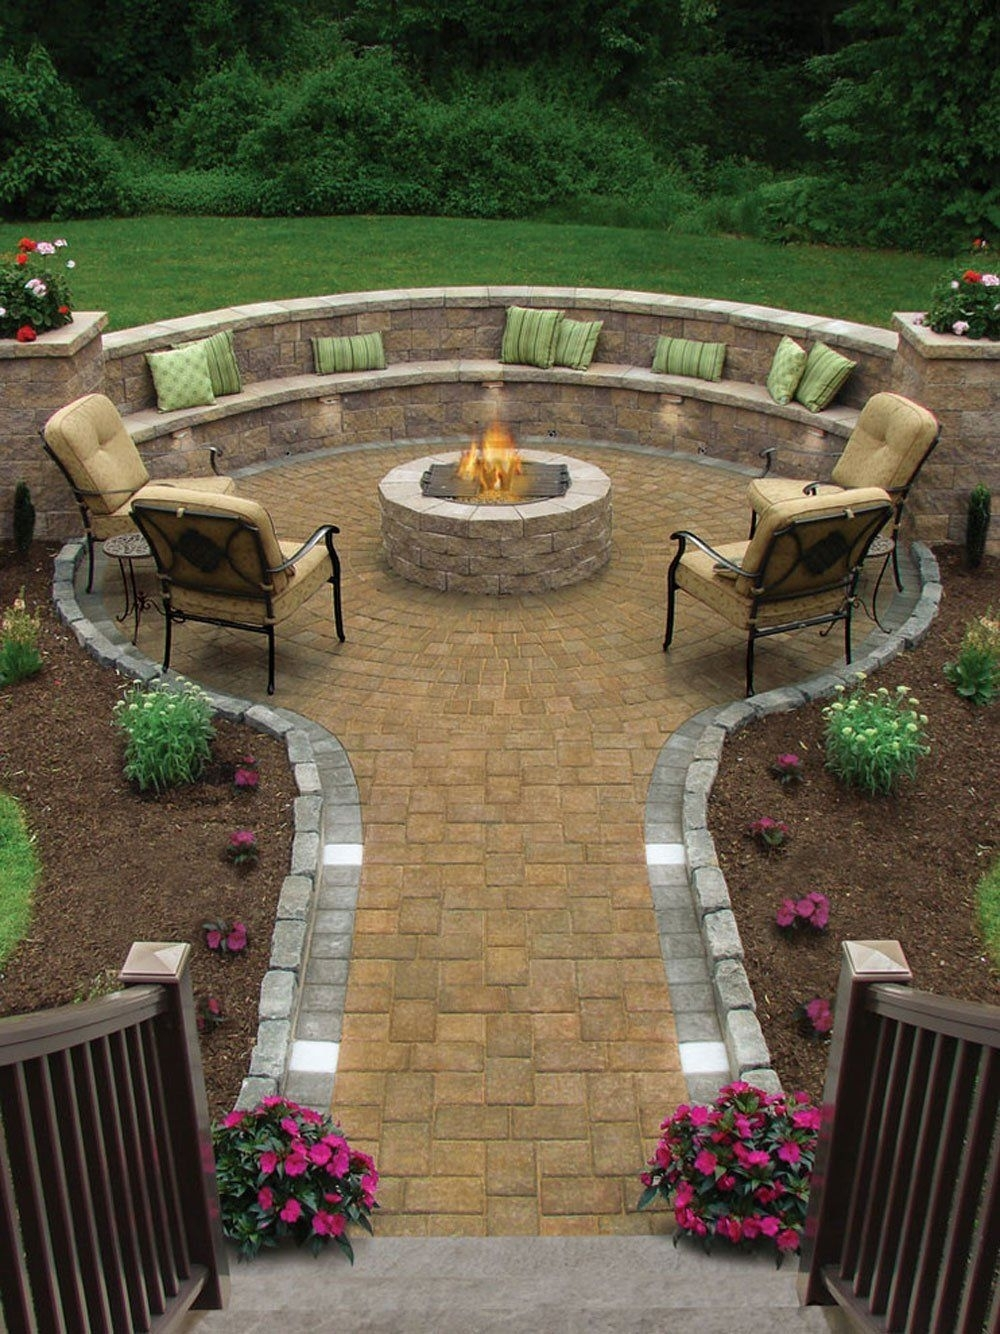 17 Of The Most Amazing Seating Area Around The Fire Pit Ever throughout Amazing Decks Backyard Garden Ideas